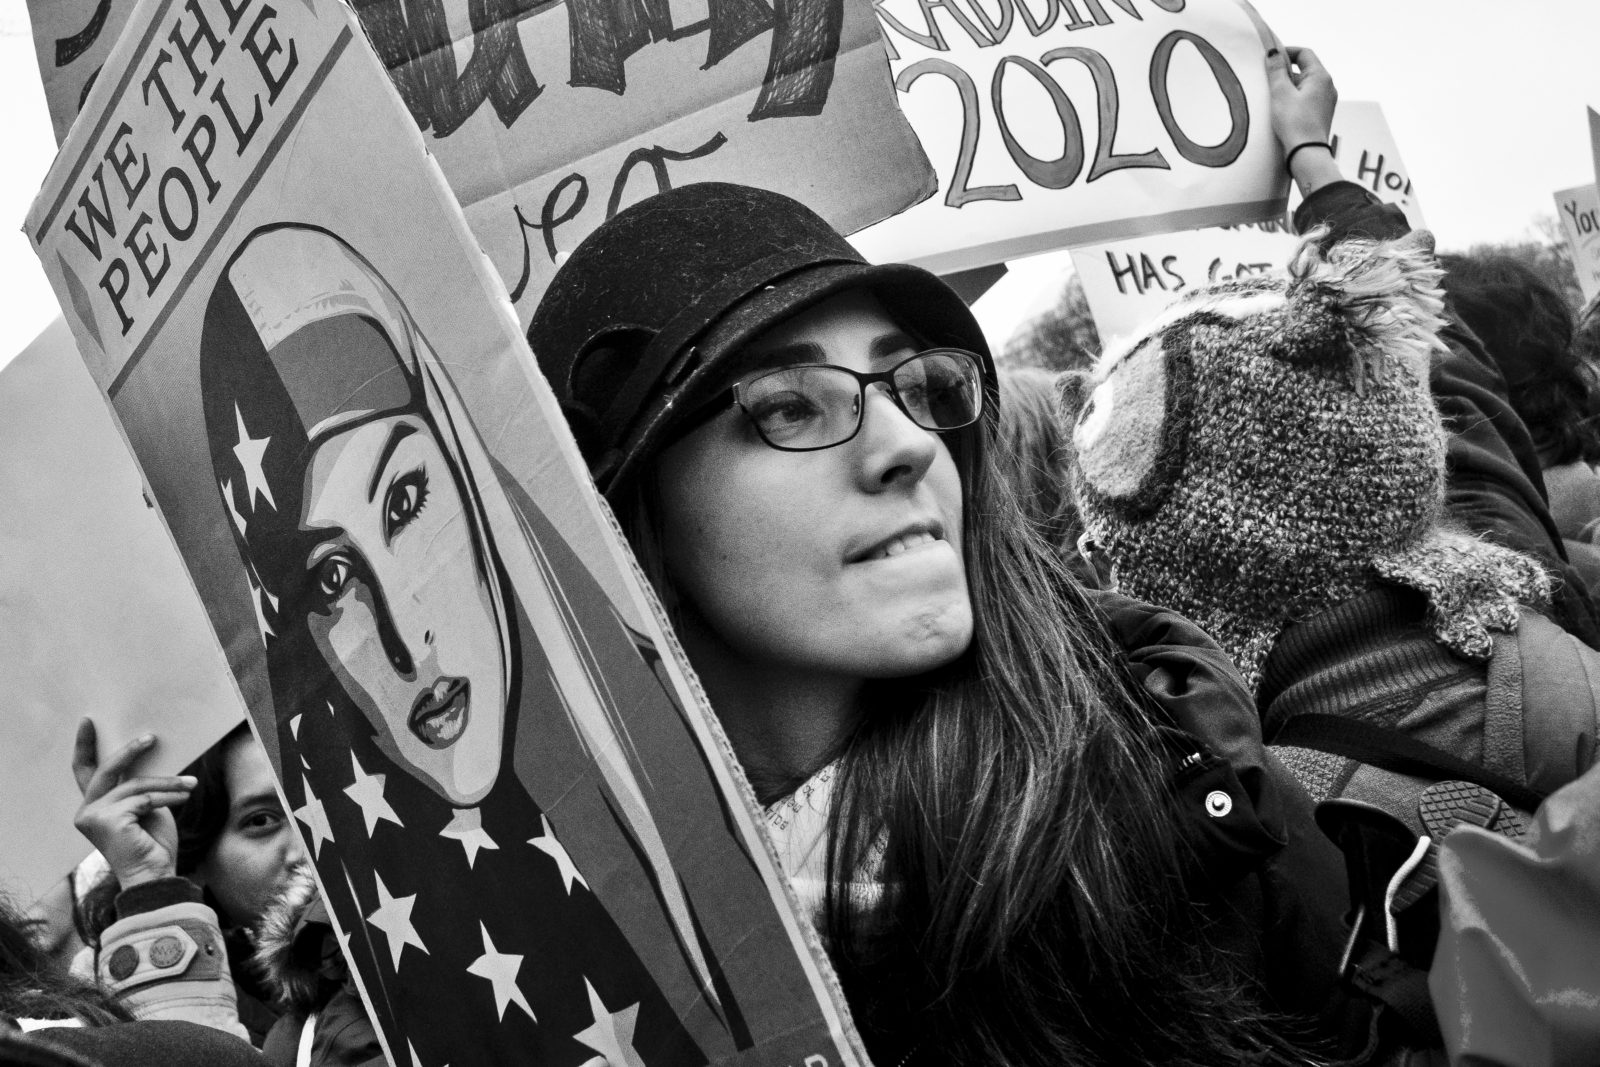 WOMENS MARCH PETE MAROVICH